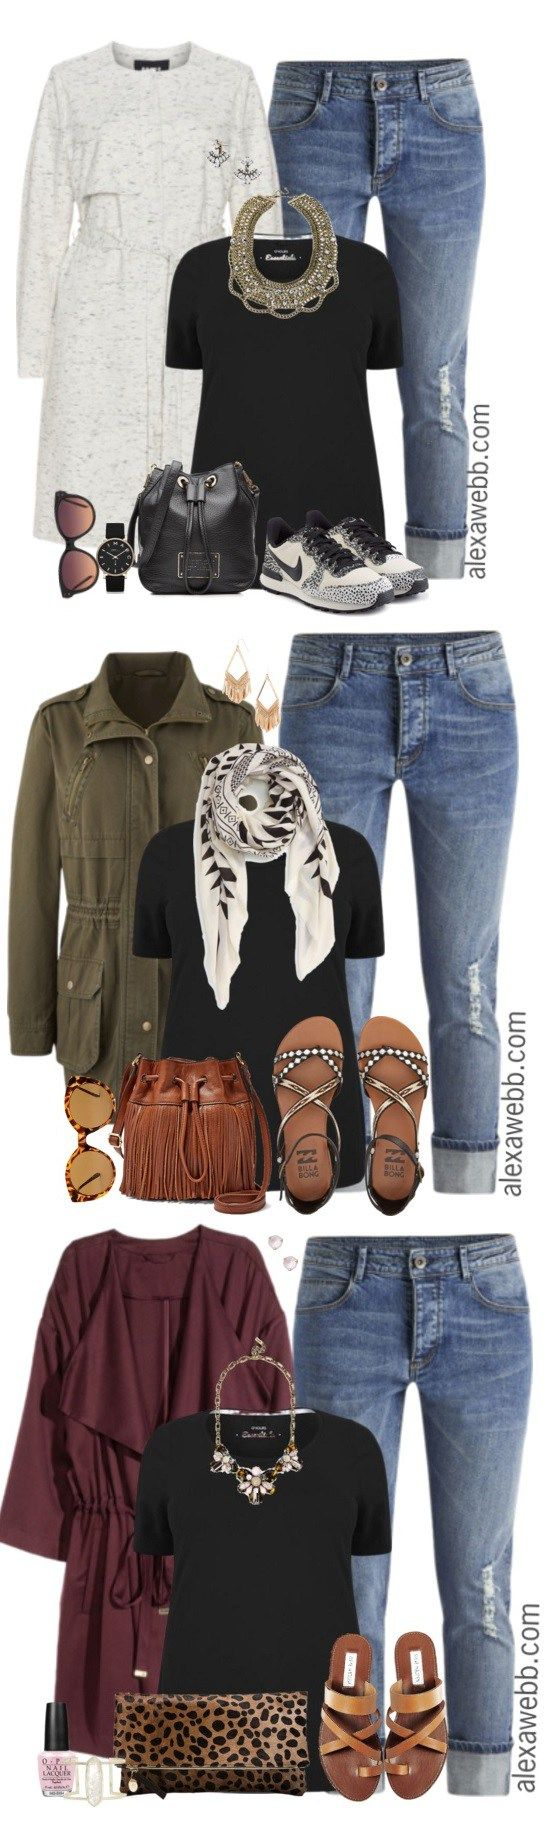 Plus Size Outfit Ideas - Plus Size Jeans and a Black Tee - Plus Size Fashion for Women - alexawebb.com #alexawebb #plus #size: